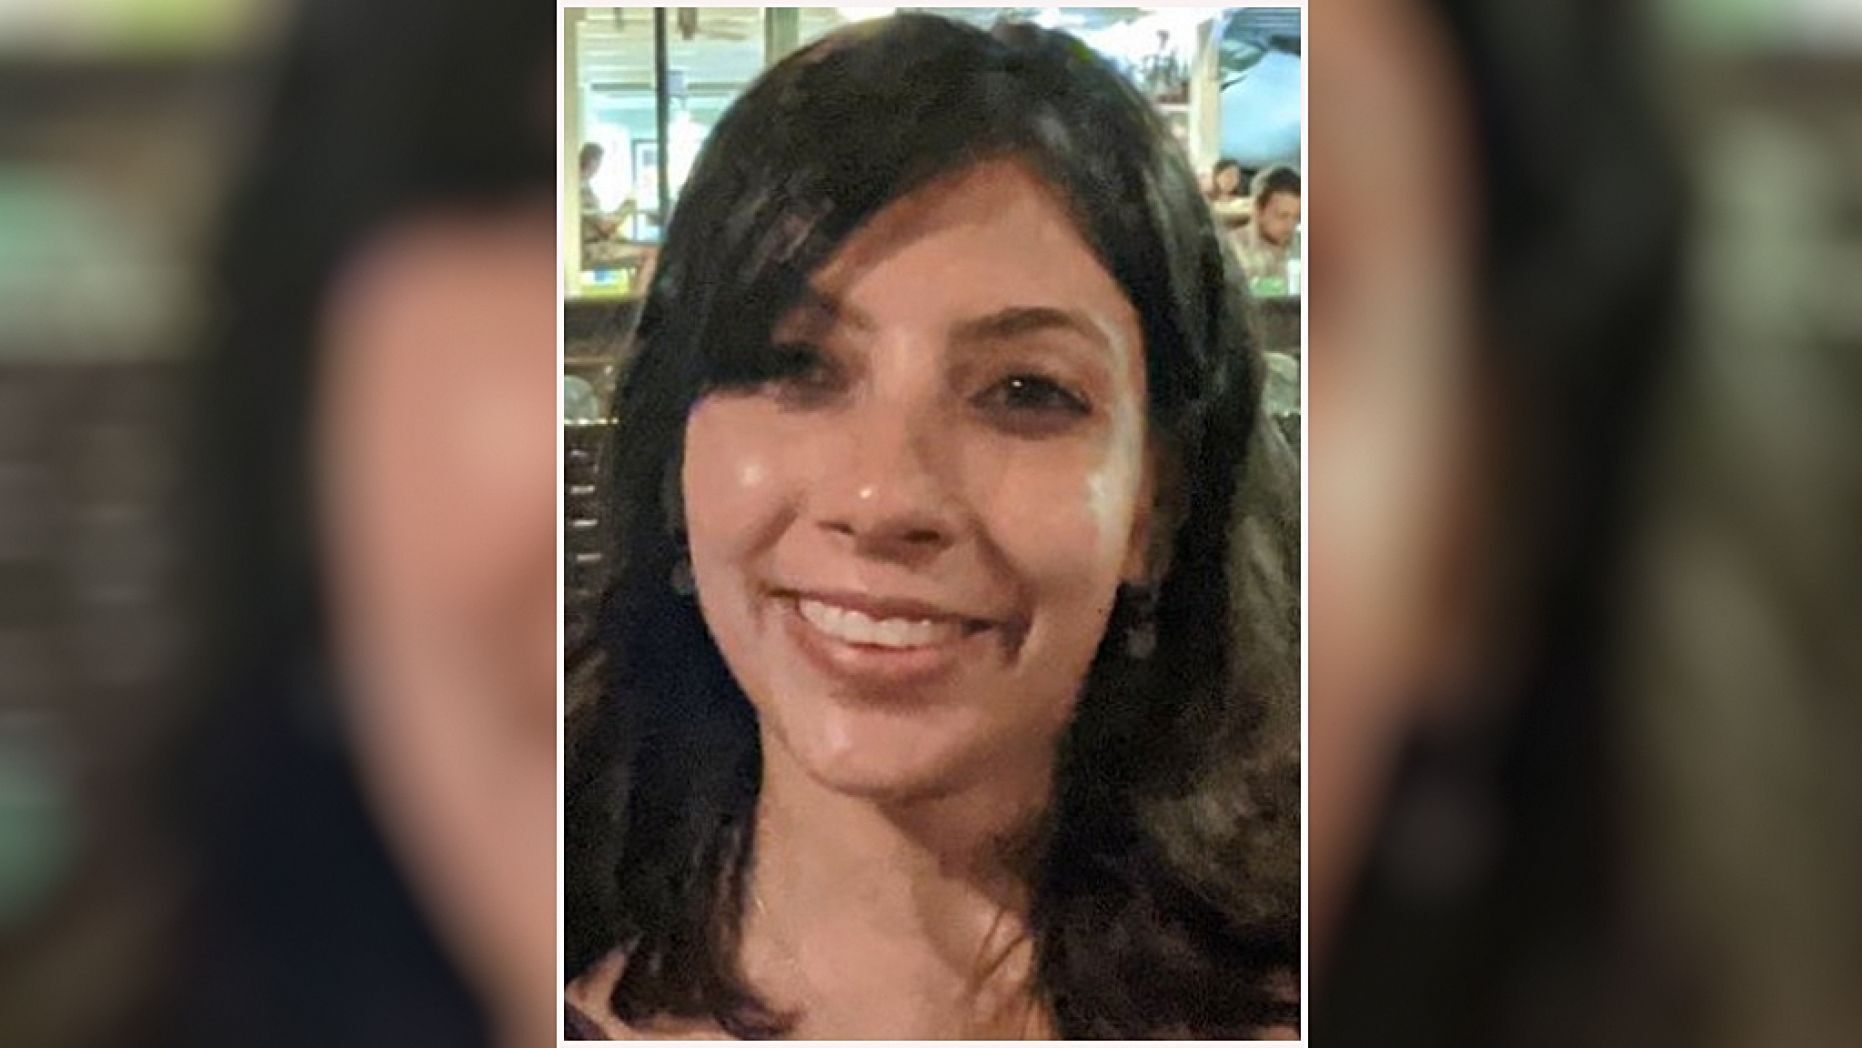 Smriti Saxena went missing in Hawaii. Her husband, Sonam, has been arrested in connection to her disappearance. (Hawaii Police Dept)